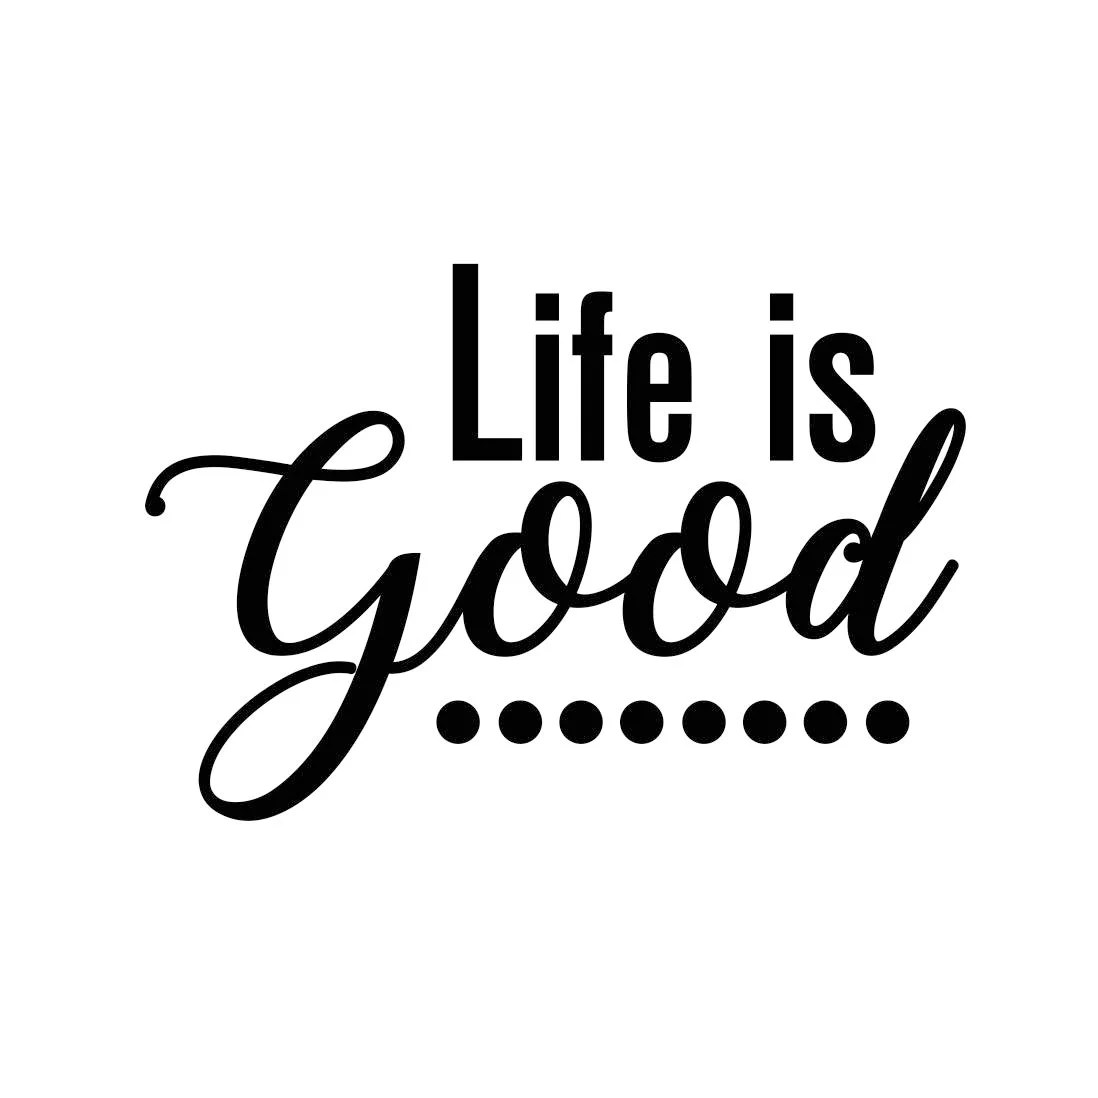 Life Is Good Phrase Graphics Svg Dxf Eps Cdr Ai Vector